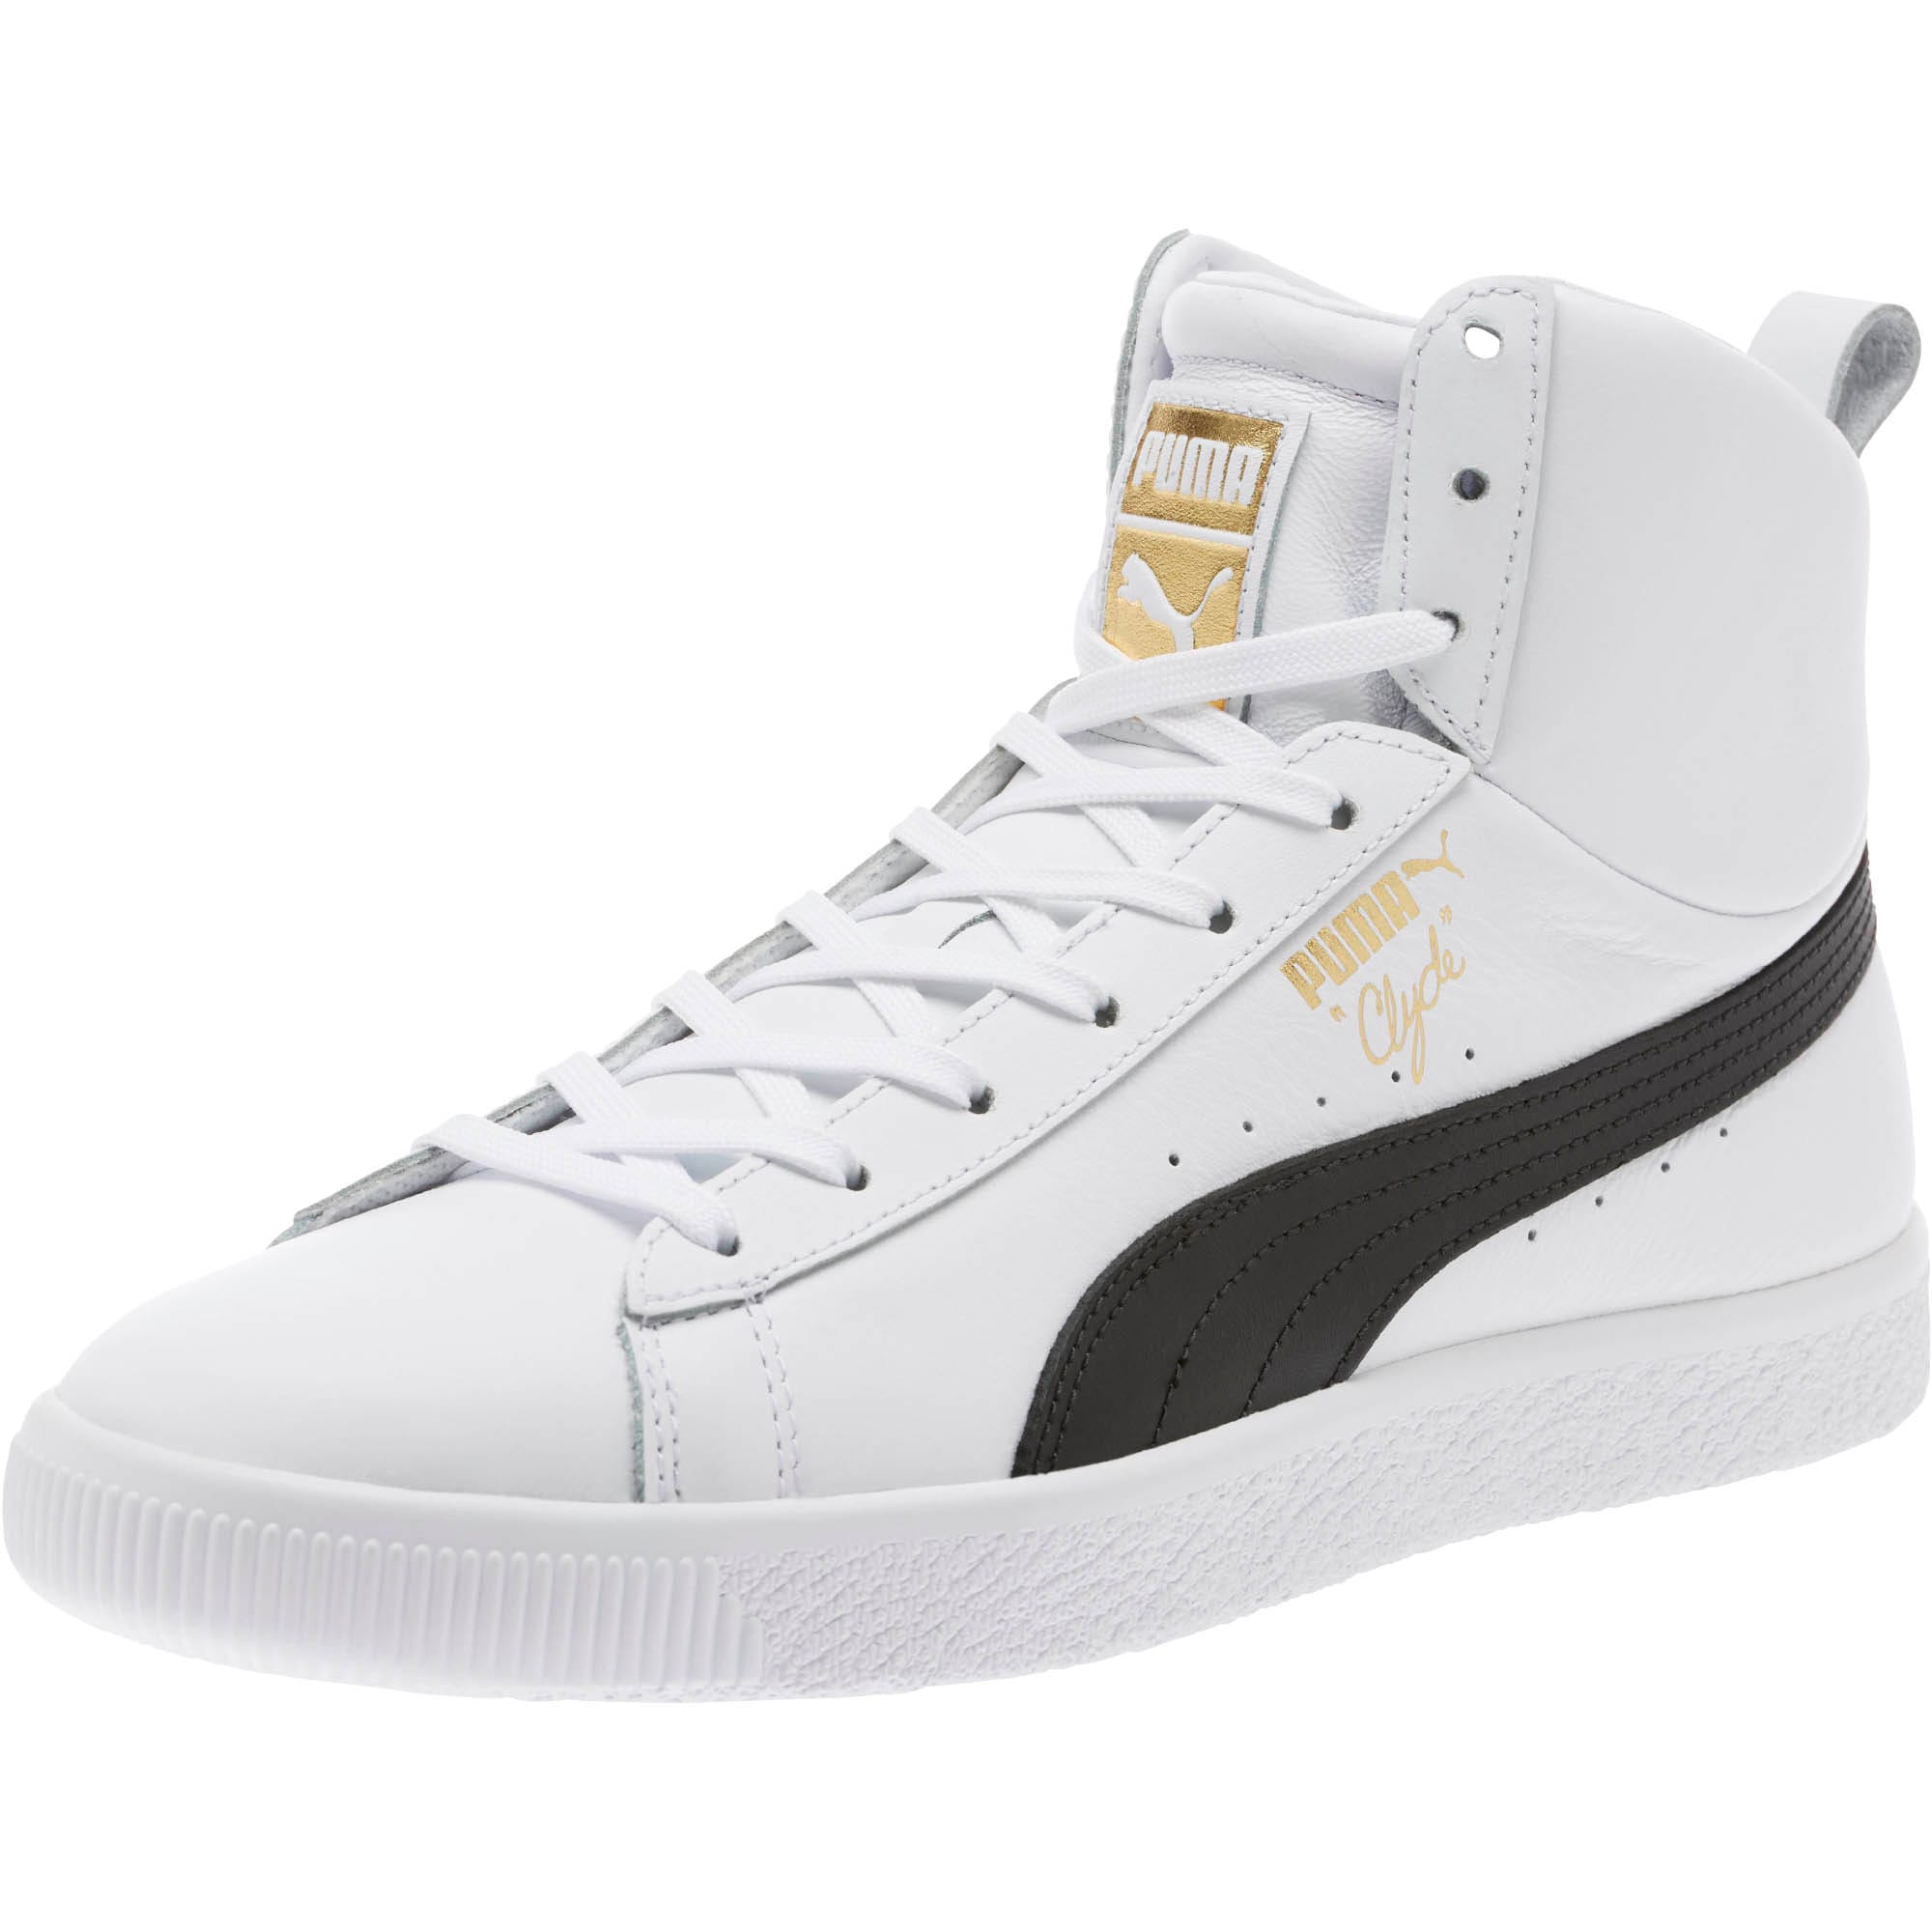 reputable site 60170 f9eaf Clyde Core Mid Sneakers